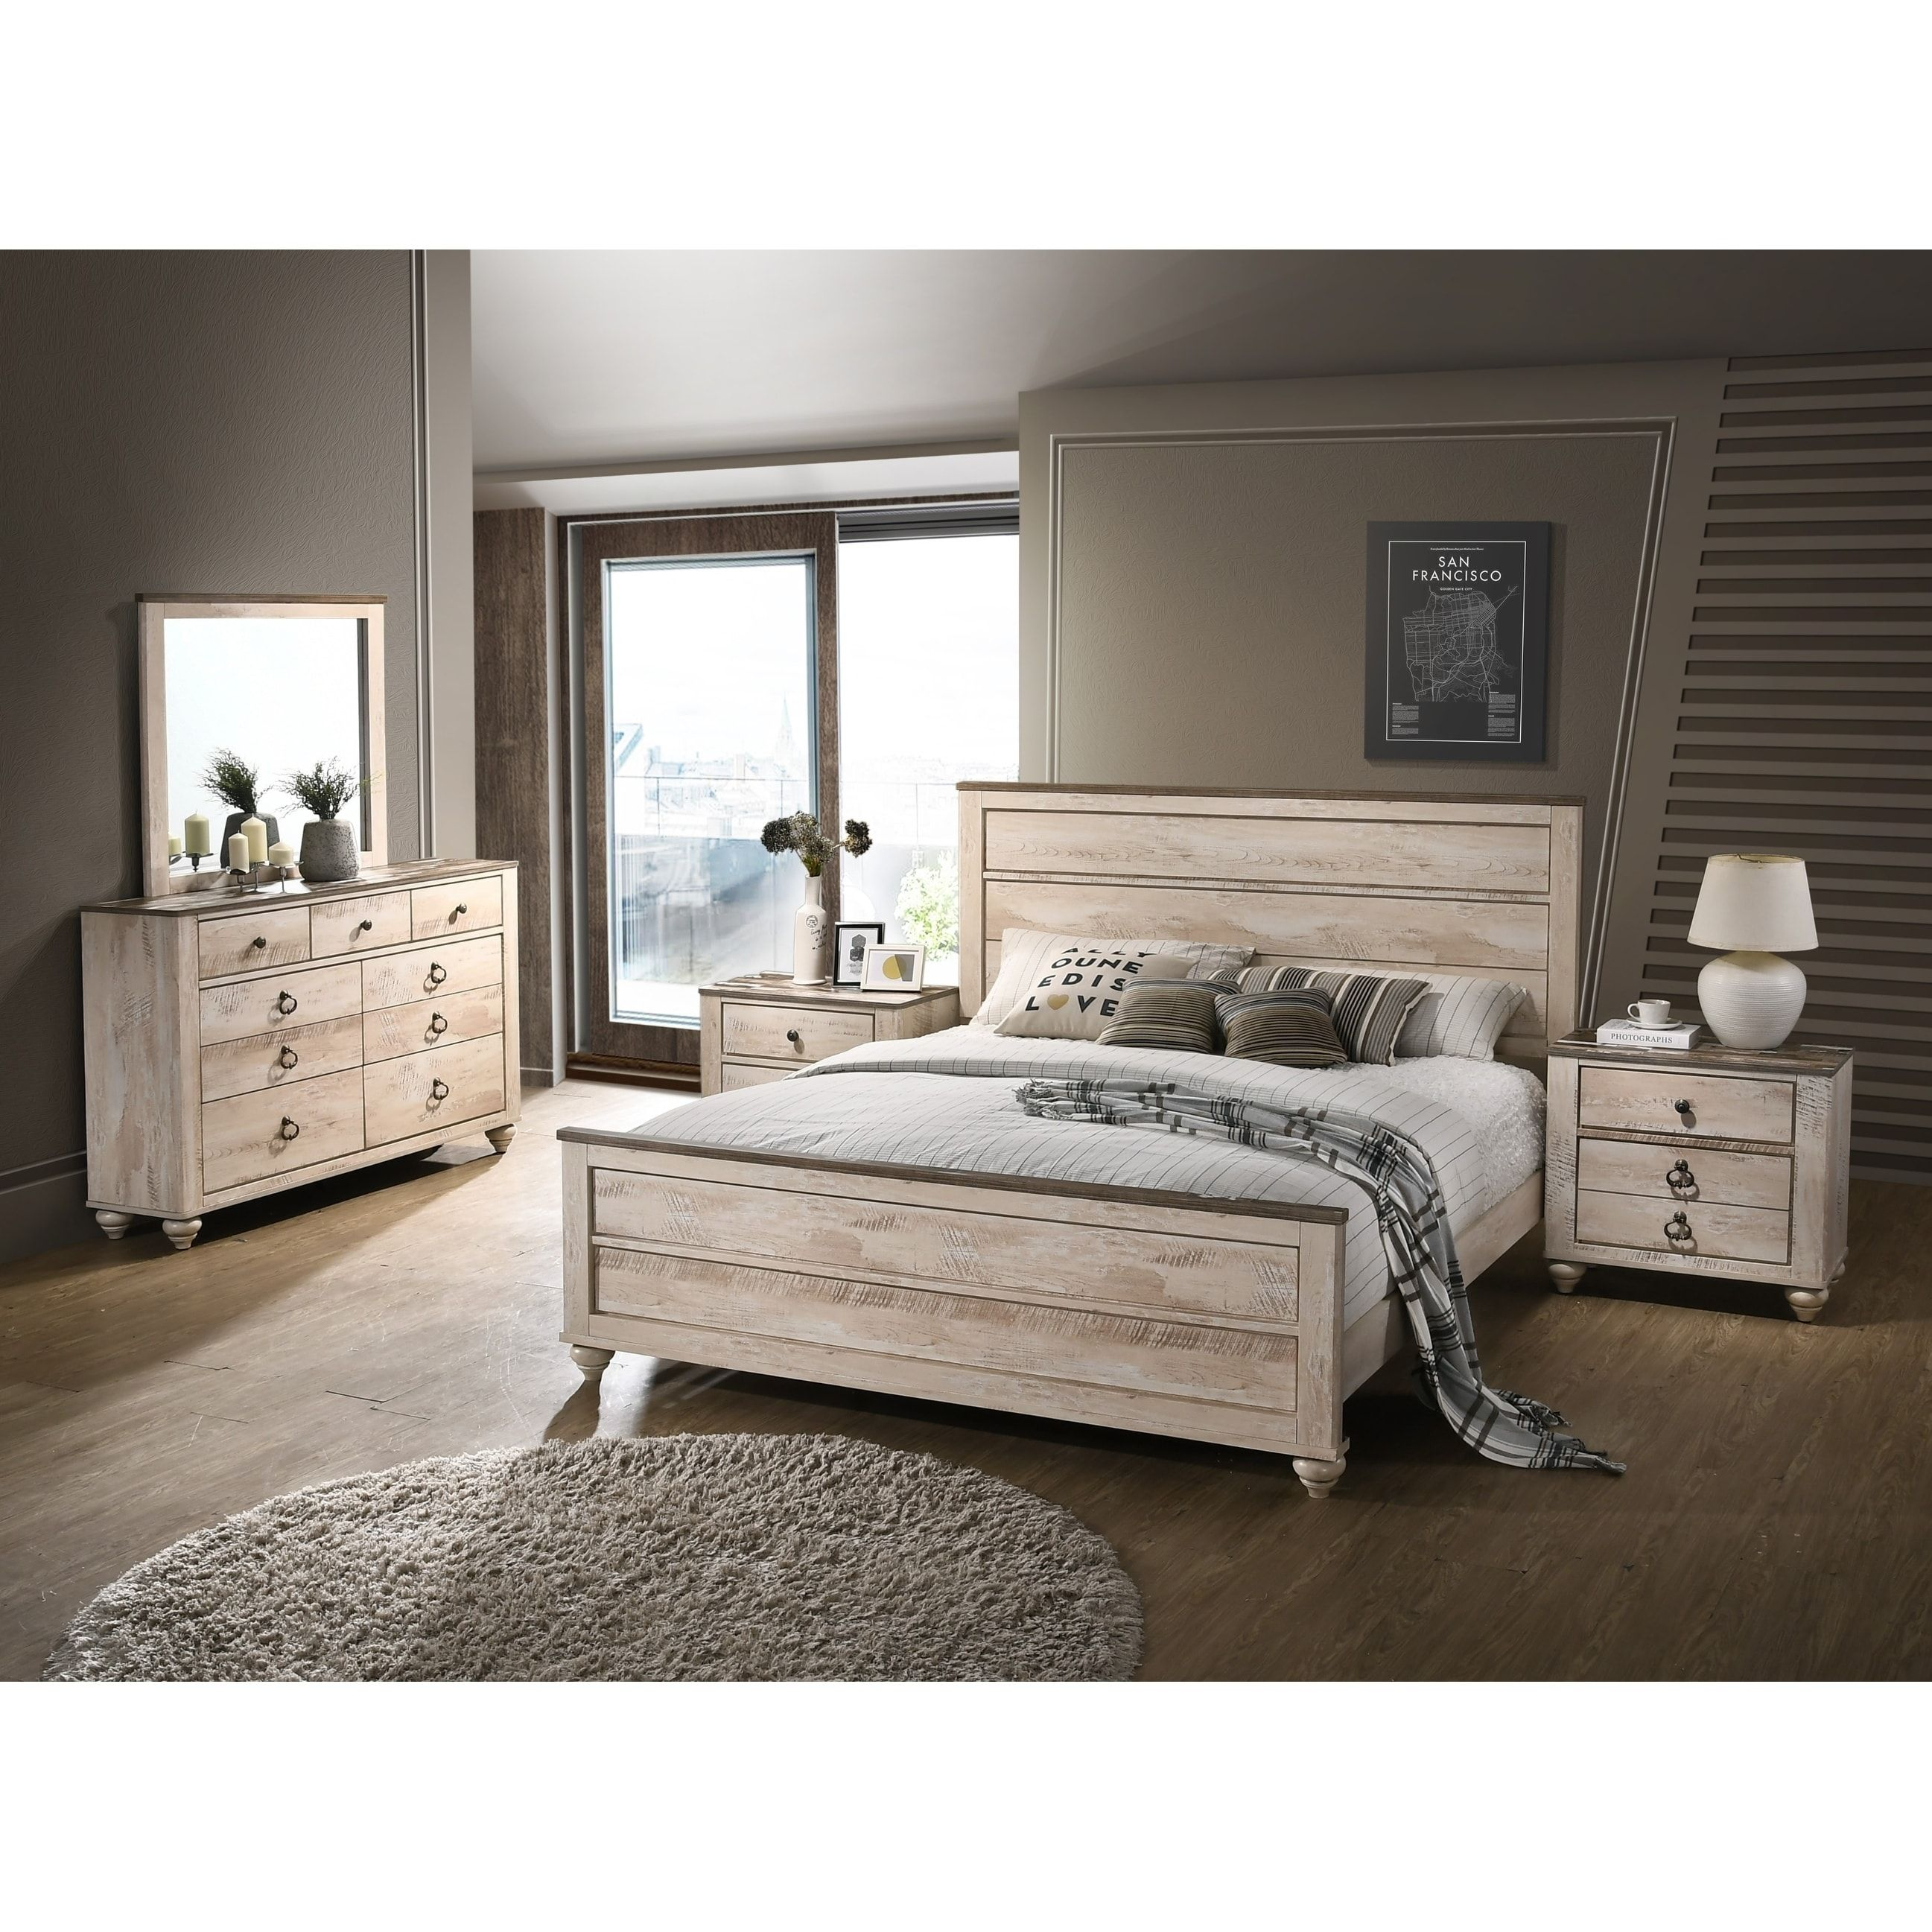 Overstock Com Online Shopping Bedding Furniture Electronics Jewelry Clothing More King Bedroom Sets White Washed Bedroom Furniture Bedroom Set